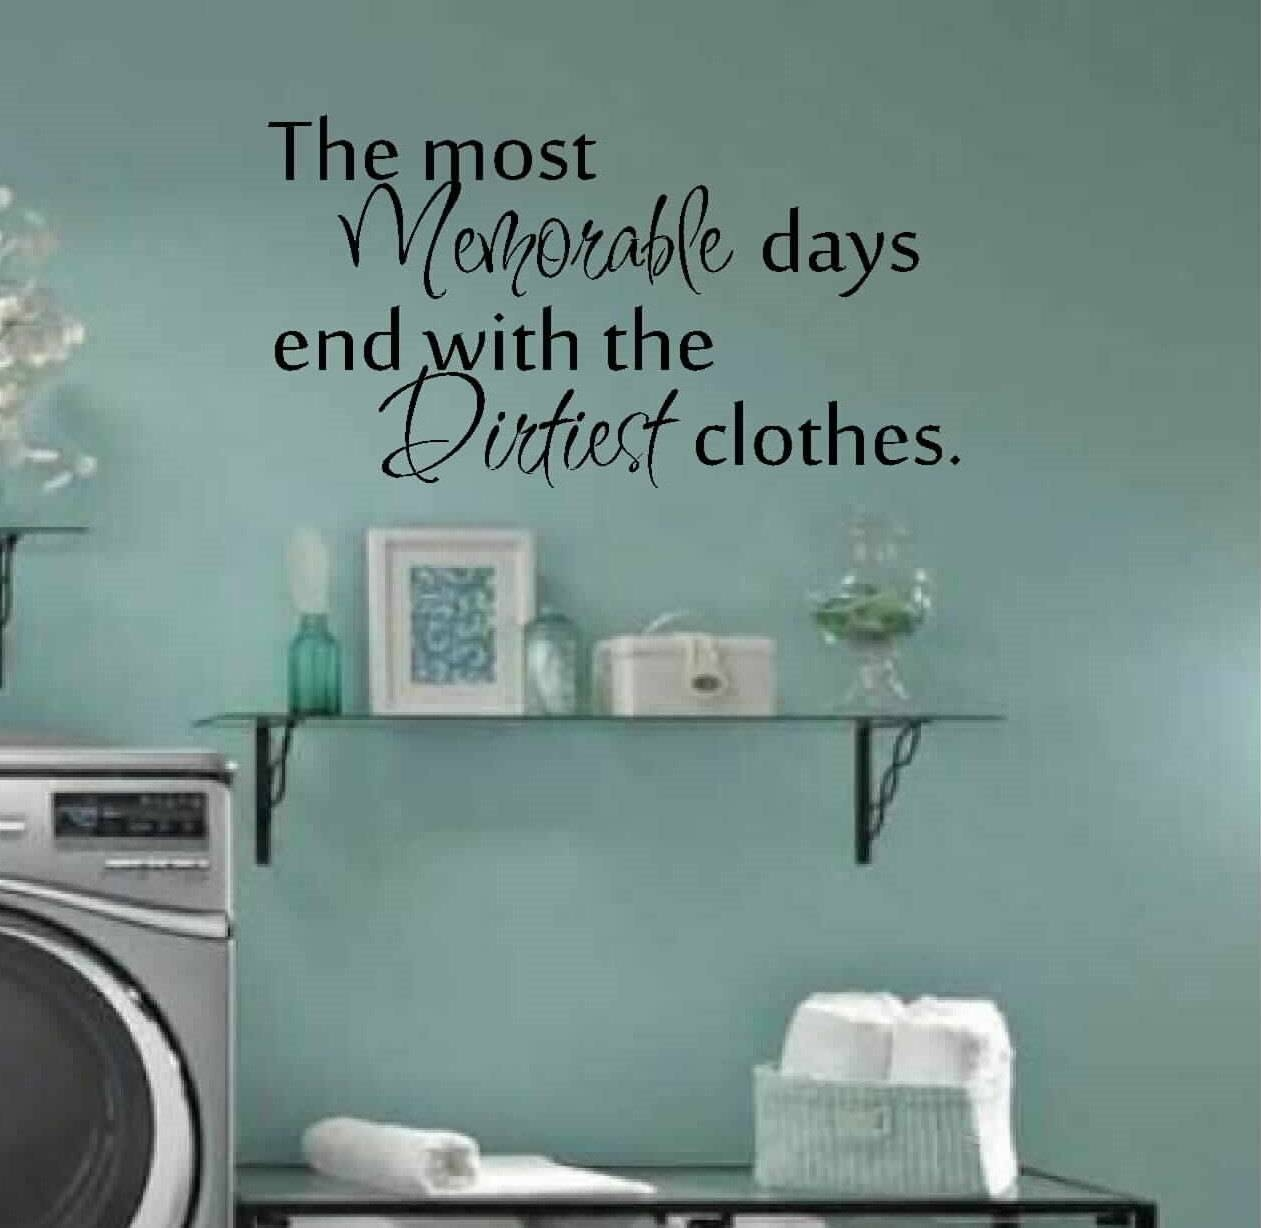 Laundry Room Decor Wall Art Matt Vinyl Decal Laundry In Current Laundry Room Wall Art Decors (View 17 of 25)